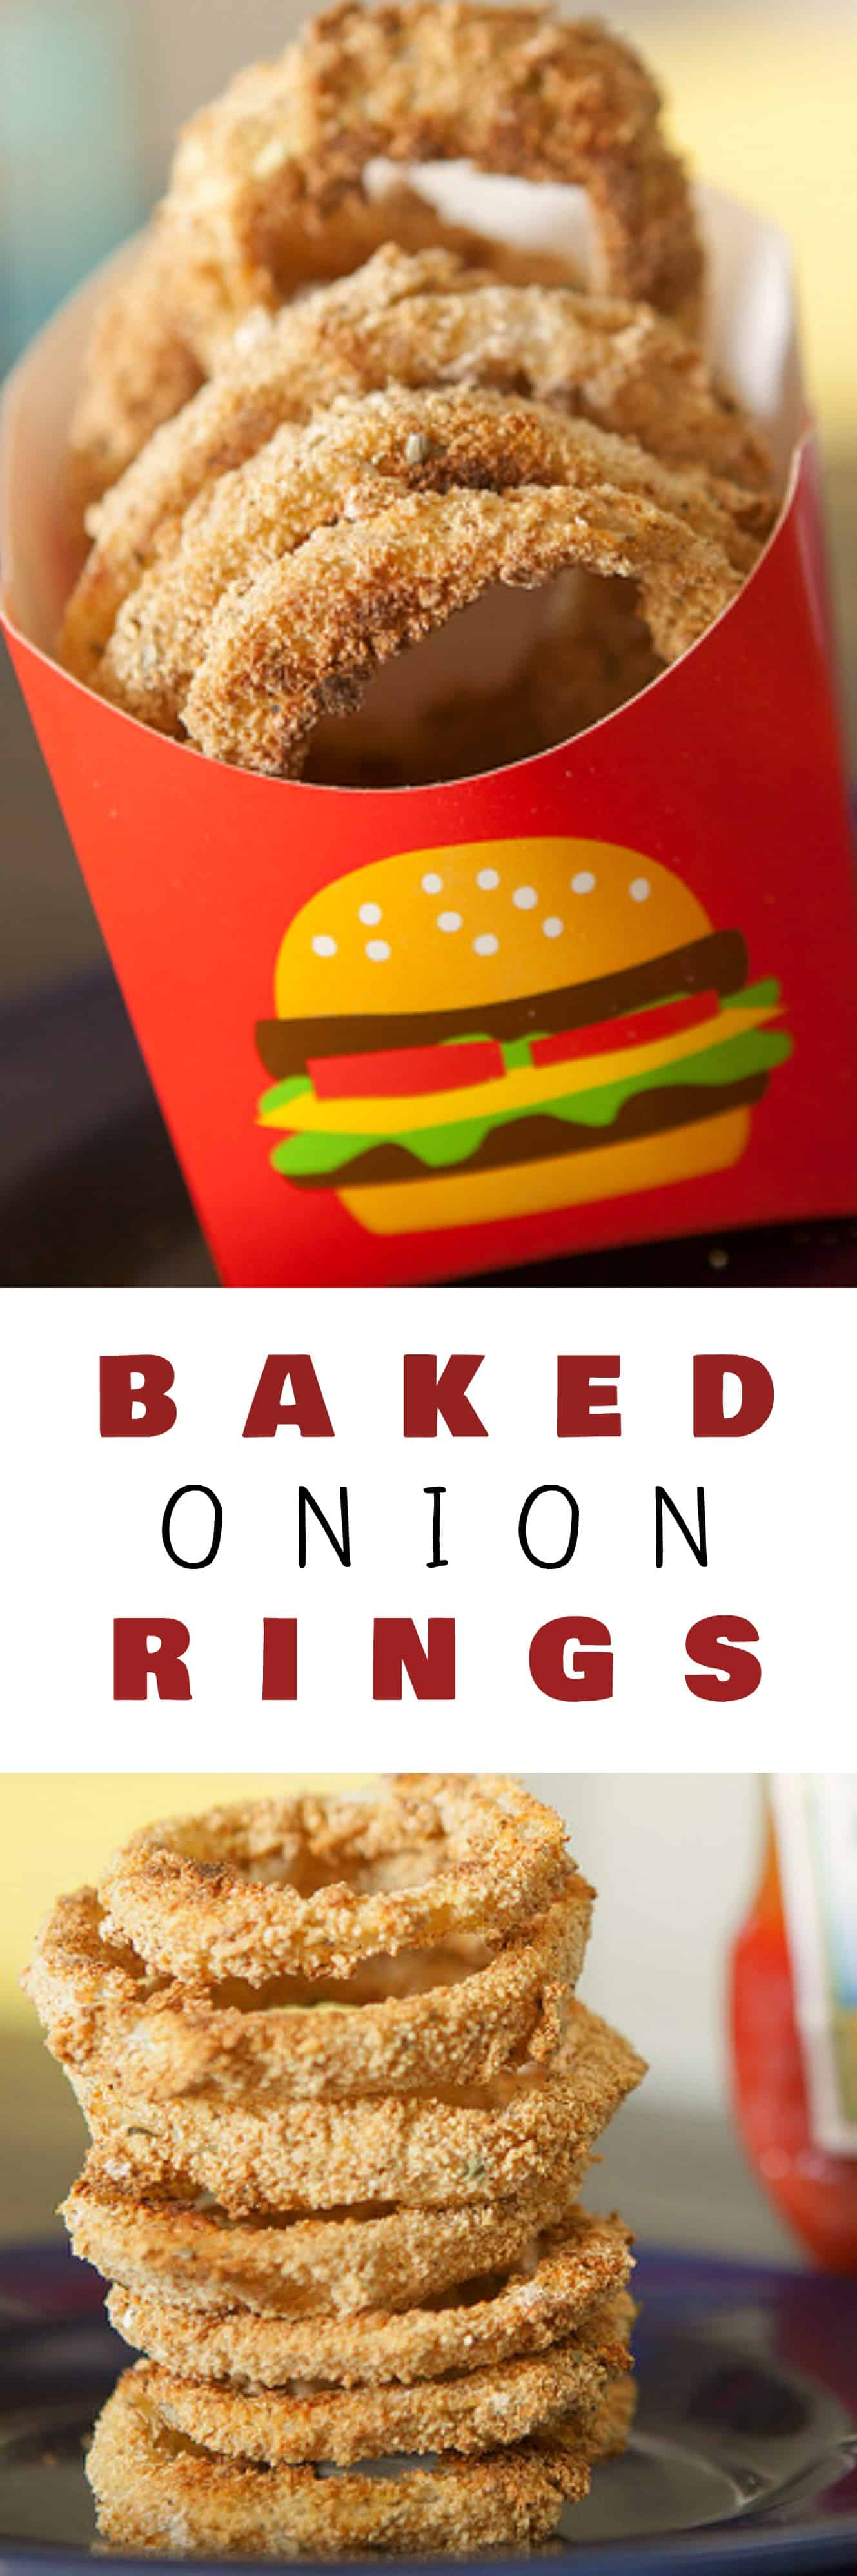 EASY BAKED Onion Rings! This homemade oven baked onion rings recipe is a great side to cheeseburgers! The batter is made with flour, milk, egg, breadcrumbs and spices! We use our garden grown onions to make them – we love how crispy they are!